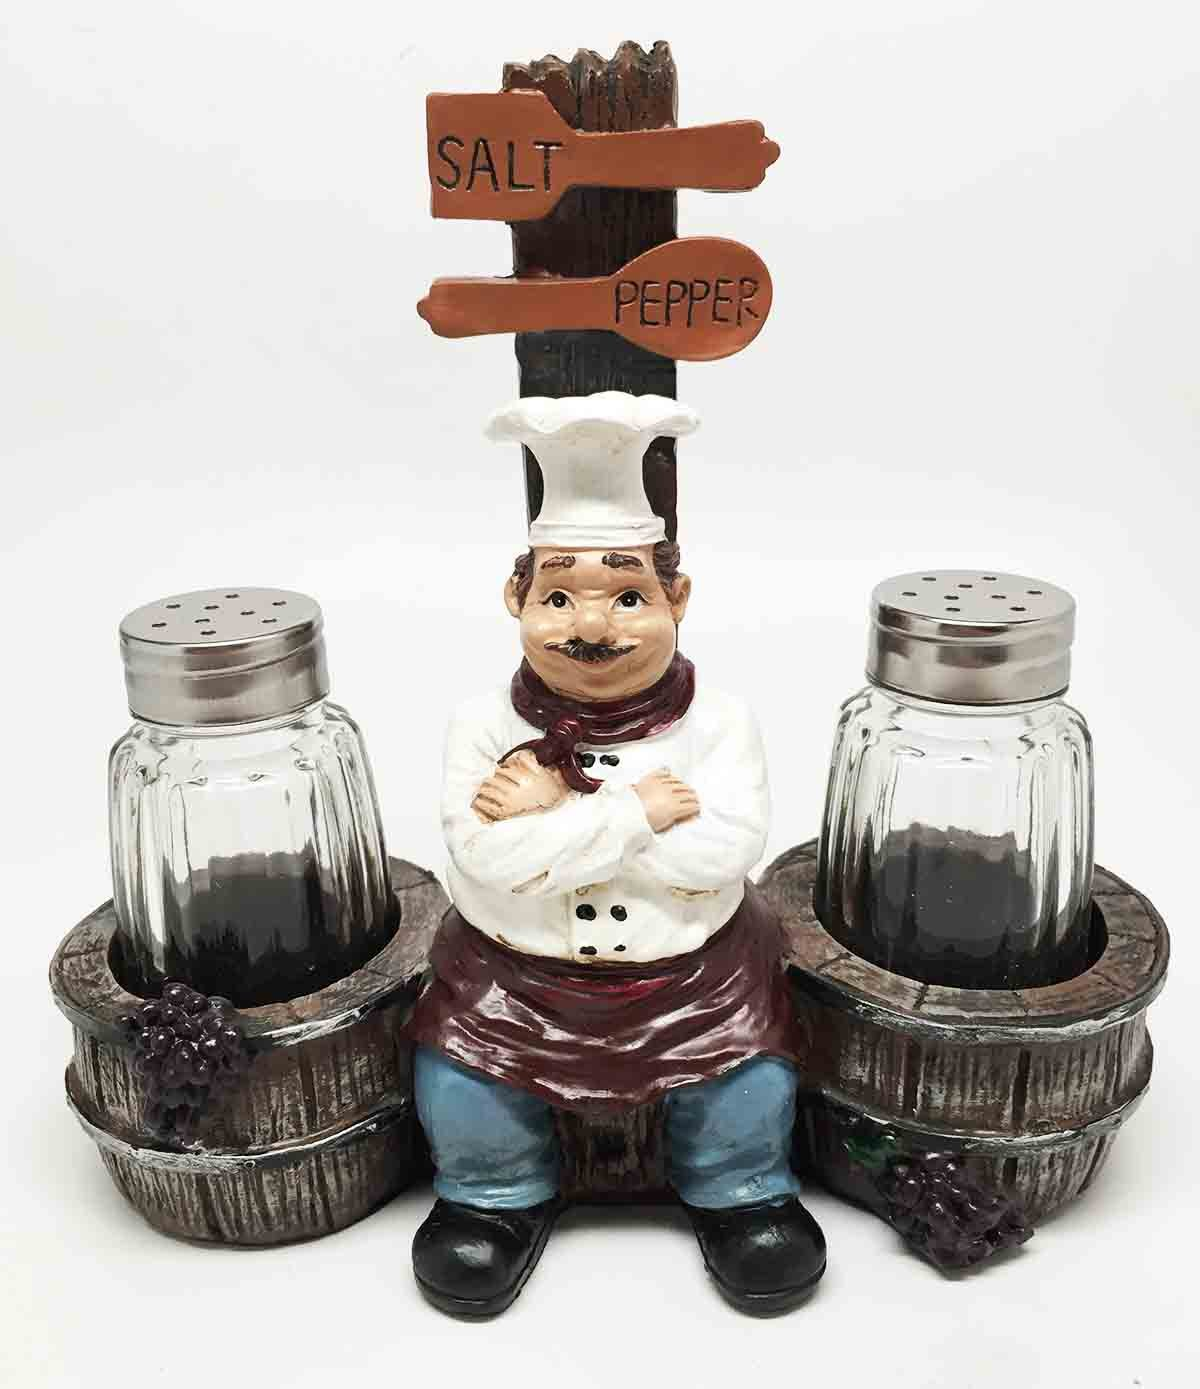 Chef Le Cordon Bleu Sitting By Wooden Barrels Salt Pepper Shakers Holder Figurine